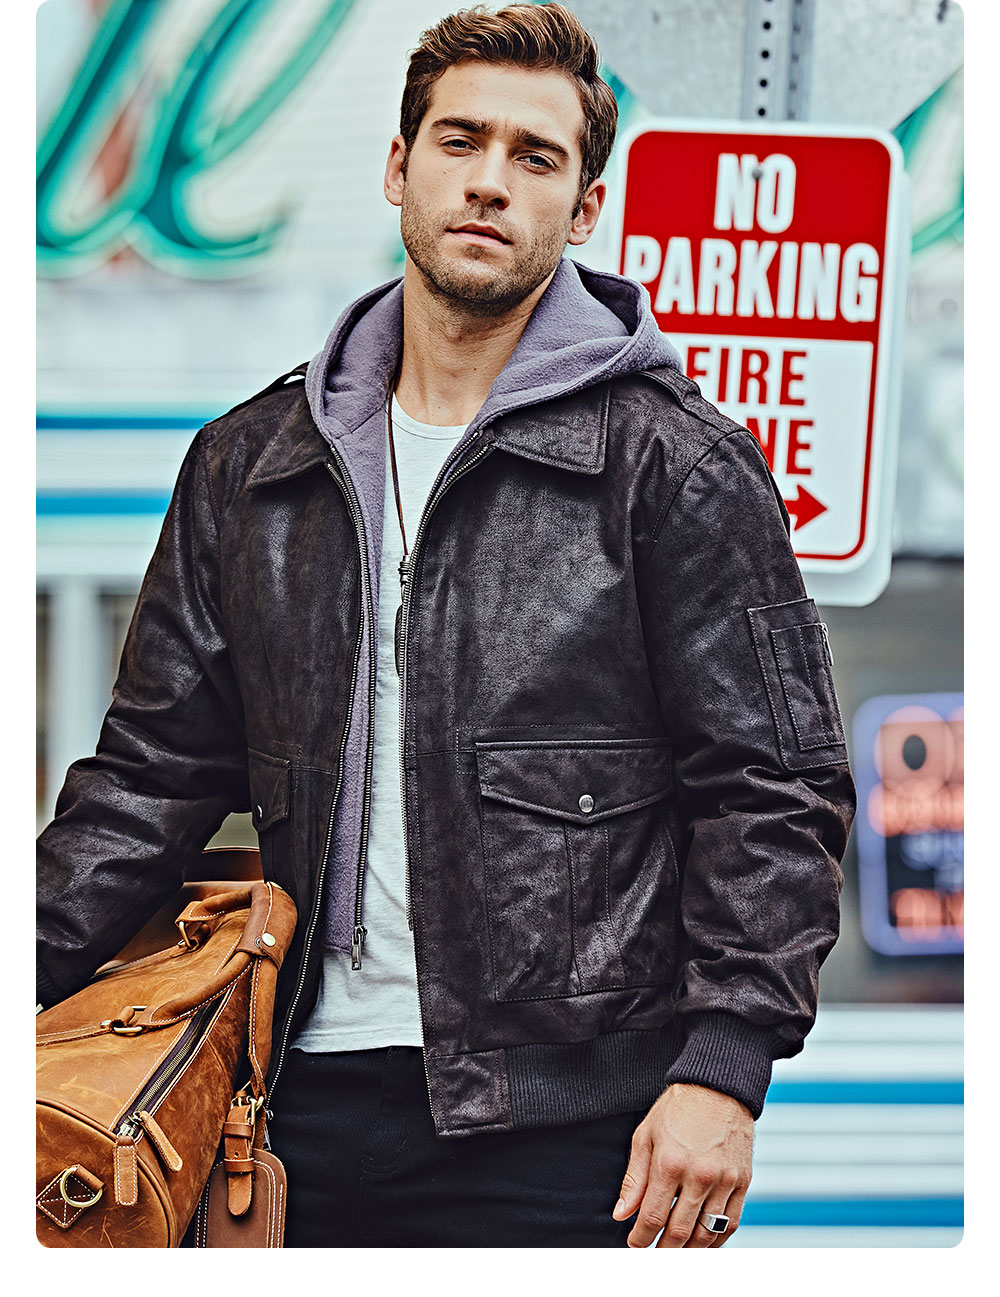 Hf905da247ba14571b510e641c276f6c1v FLAVOR New Men's Genuine Leather Bomber Jackets Removable Hood Men Air Forca Aviator winter coat Men Warm Real Leather Jacket